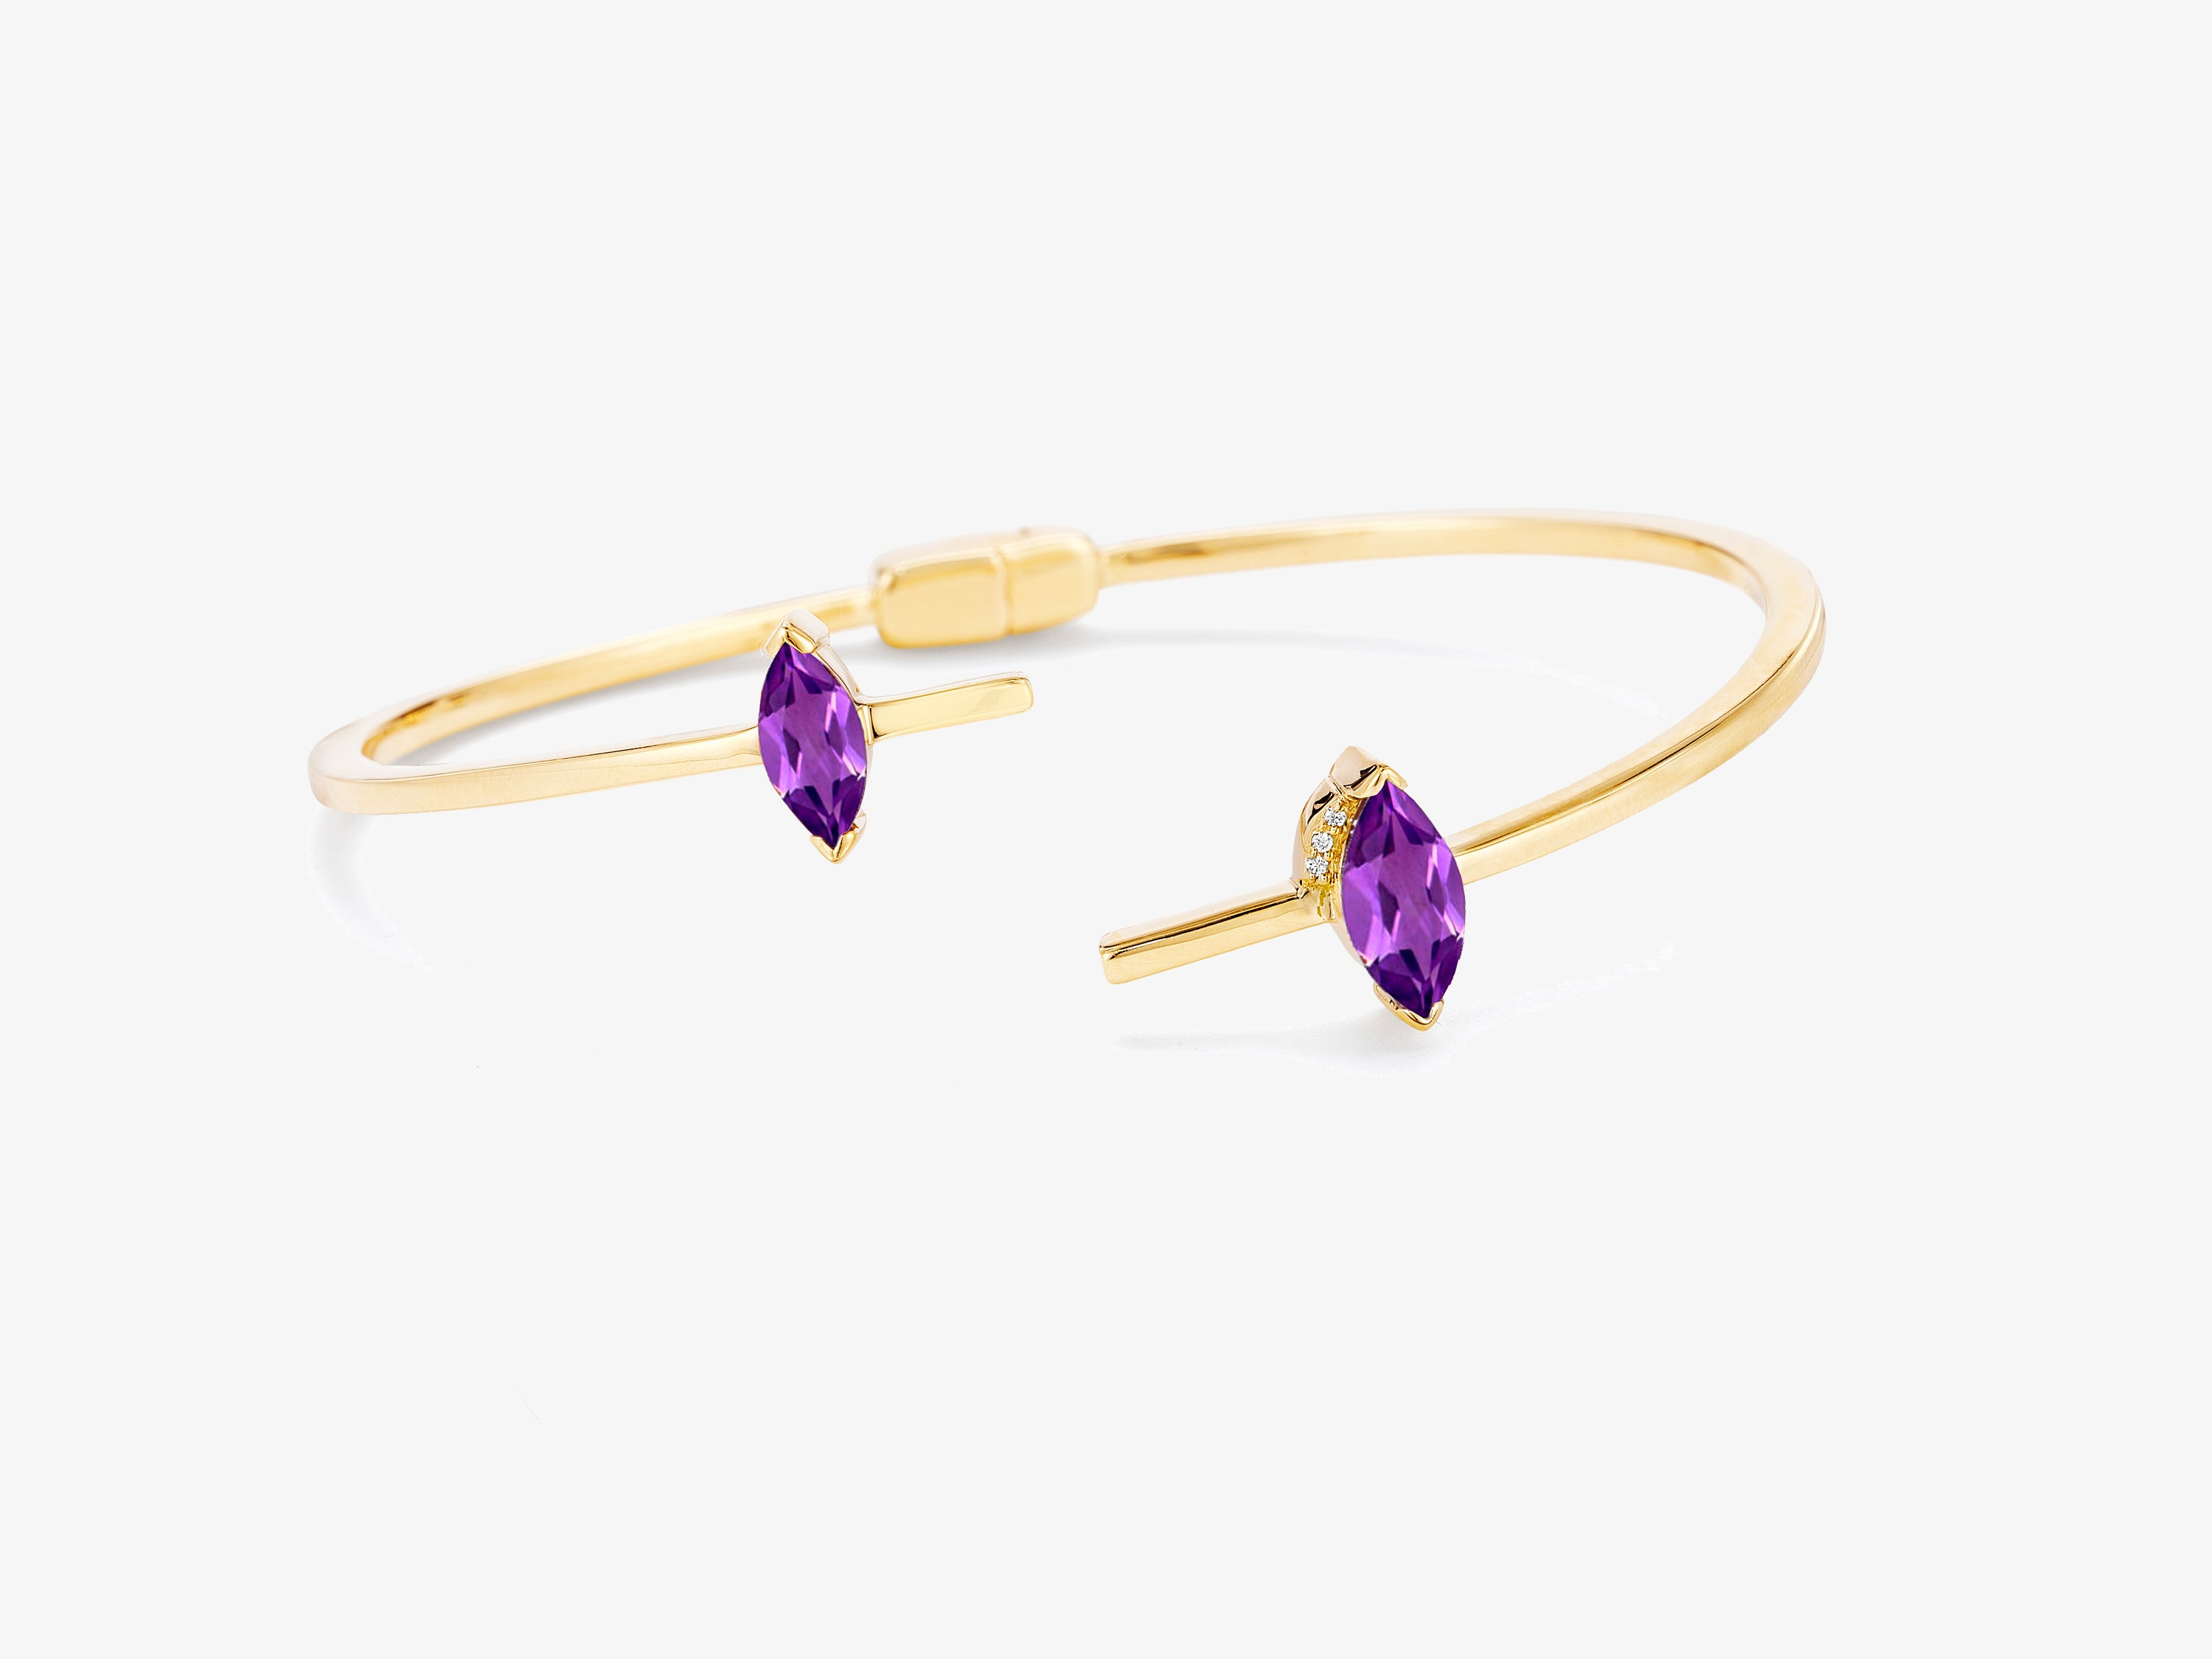 Asymmetrical Hinged Bangle with Marquise Shaped Stone Detail